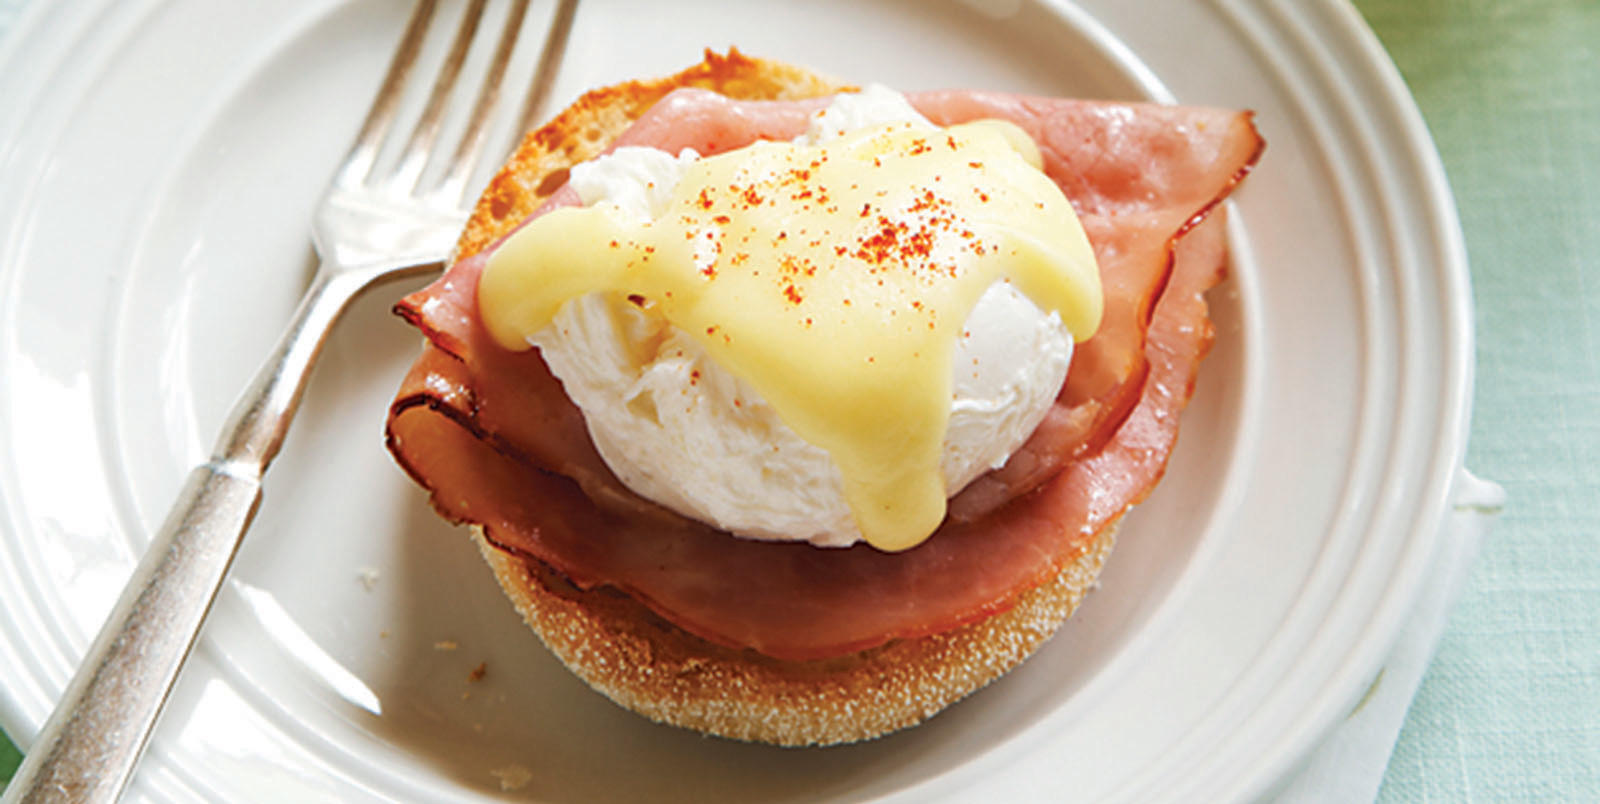 Sobeys | Classic Eggs Benedict with Hollandaise Sauce